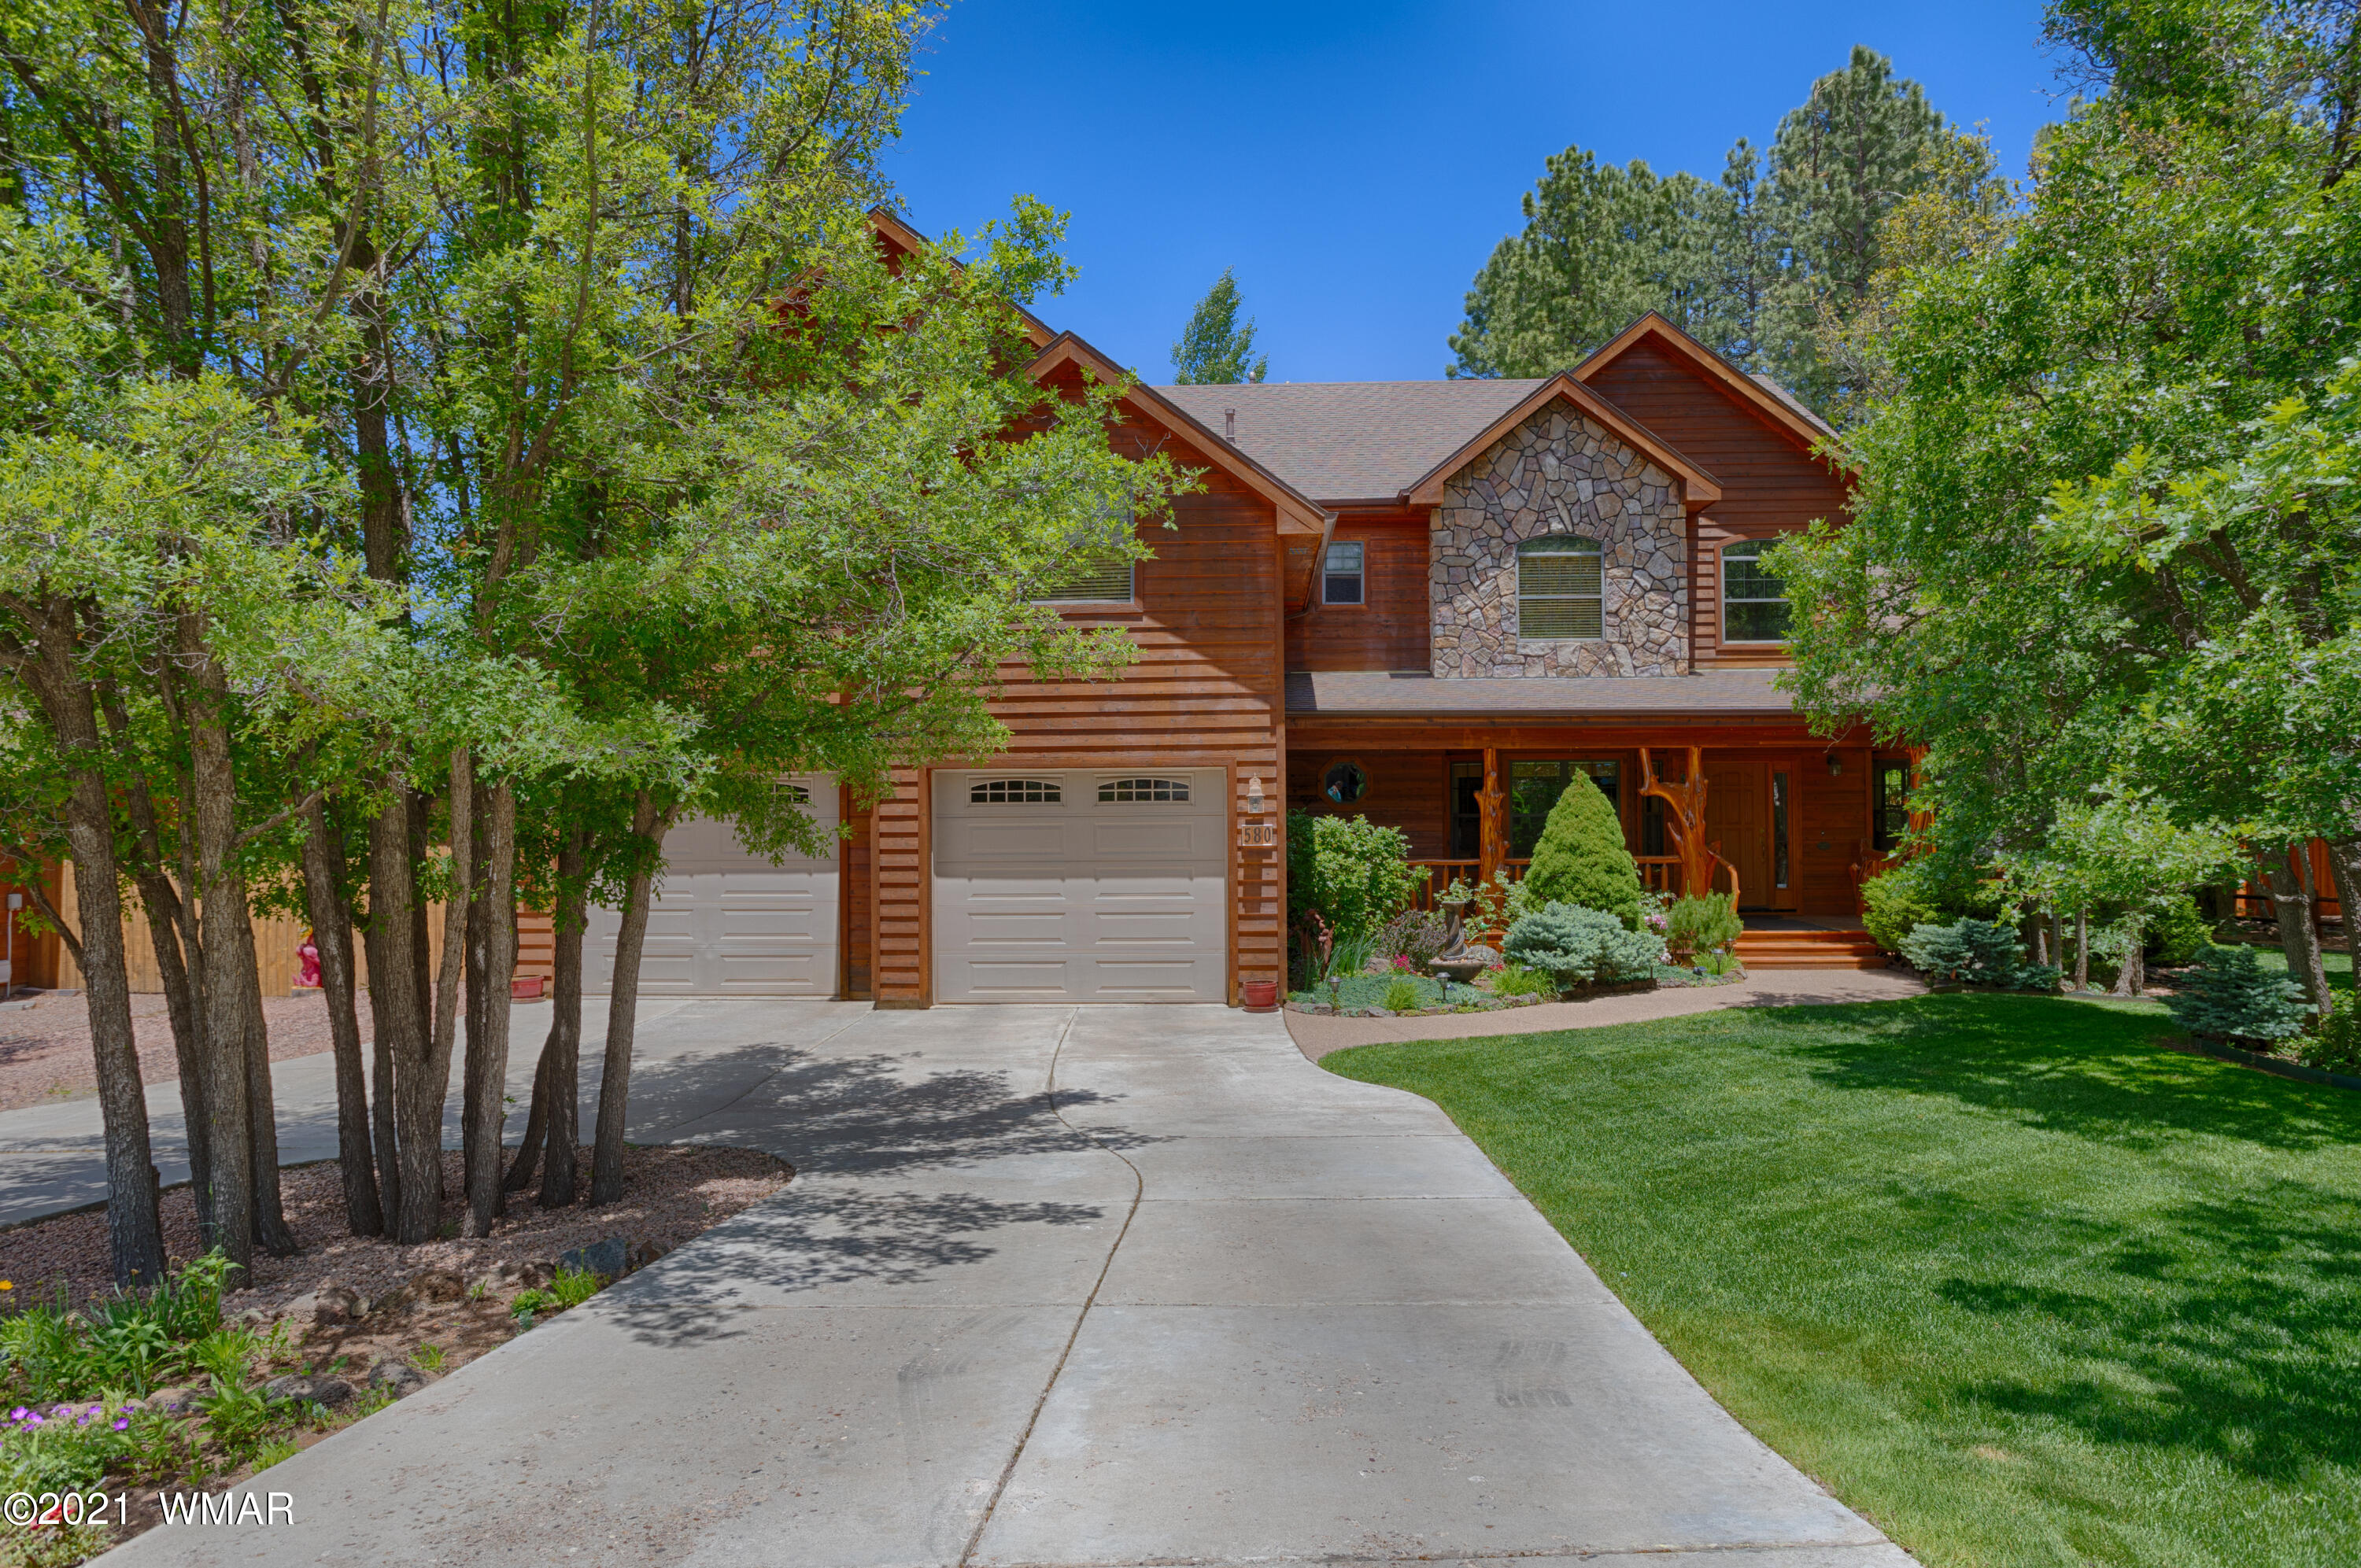 """Gorgeous Woodland Hills home centrally located in Pinetop!  This large 3960 square foot home with 5 bedrooms and 3.5 bathrooms has everything you are looking for.  From the moment you enter onto the property you are greeted by an immaculate front yard with well established trees, shrubs and perennials.  The welcoming front porch and front foyer invites you into the beautiful home with many different wood features like the solid Oak flooring to the Juniper wood railing.  The natural light flows throughout the many downstairs entertaining areas like the living room/dining room with a gas fireplace, the family room with a wood burning stove or the open kitchen/dining room with features like 3 different ovens!  (continued) The upstairs special features include the main master bedroom with its own gas fireplace & master bathroom, three separate guest bedrooms & guest bathroom,  a large entertainment room and ample amounts of storage.  When walking out onto the back porch you will have an """"awe"""" moment as you take in the large porch, beautiful landscaping, ramada and different outdoor living areas. The oversized two car garage is perfect for all with its ample amount of storage areas and ceiling hangers & hooks. Other special features & home layout description is below.  This home will not last long, make an appointment today for a private tour.  Other Special Features: Exterior & back porch staining was just completed Office with built in shelves & drawers Hot water heater is 75 gallons and has a recirculating hot water pump Outdoor shed Furnishings are negotiable on a separate bill of sale outside of escrow. Hook up is in place for an AC unit  Antler chandelier above living room dining table DOES NOT convey Outdoor sauna & grill *may* be negotiable.    Layout: Downstairs features a welcoming entryway, office with built-in shelving and drawers, living room/dining area with gas fireplace, powder room, family room with wood burning stove, downstairs guest master bedroom wit"""